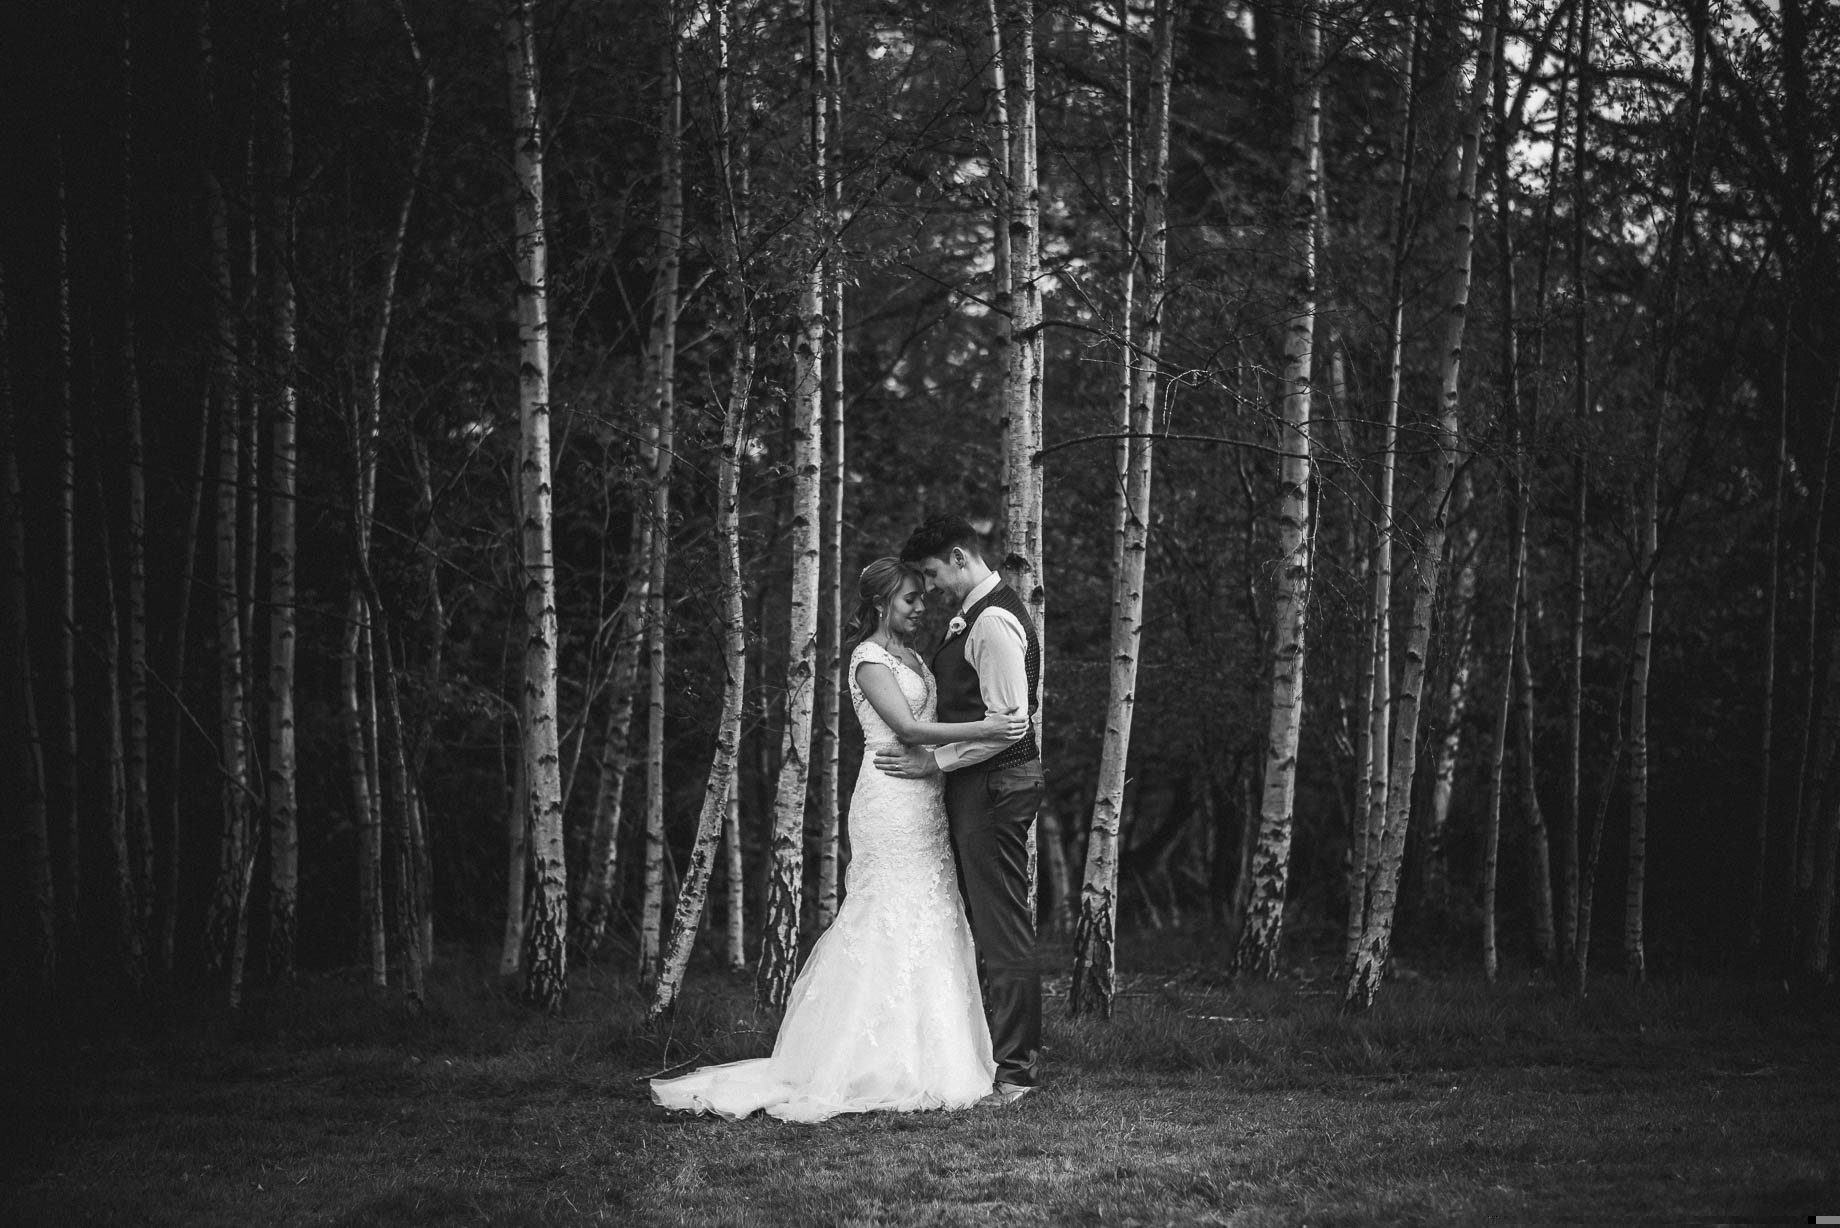 Hampshire wedding photography by Guy Collier - Emily and Tom (132 of 164)